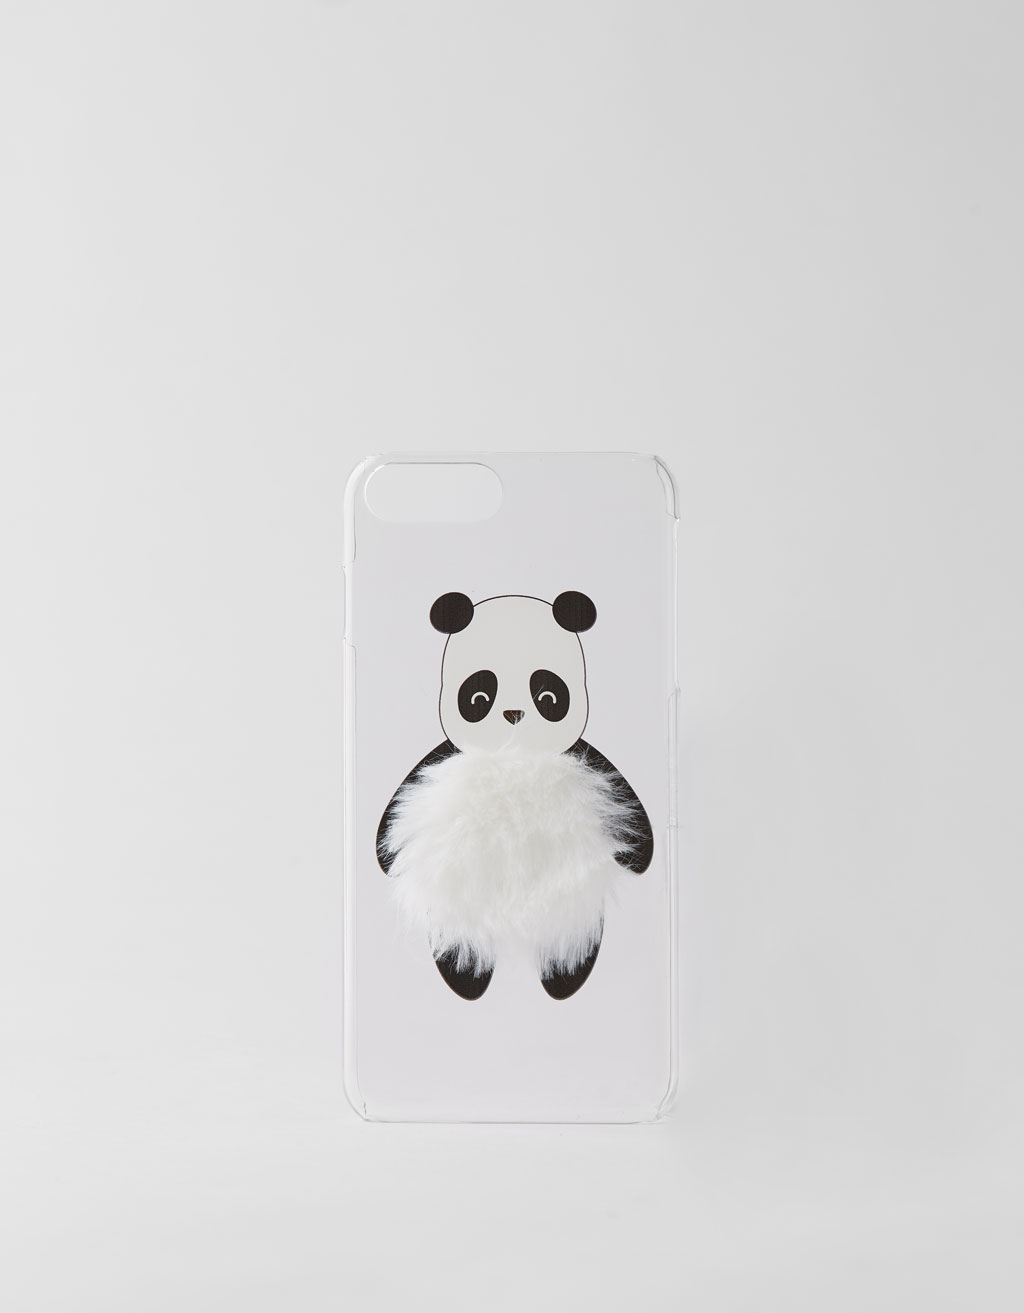 Carcasă Panda iPhone 6 plus / 7 plus / 8 plus